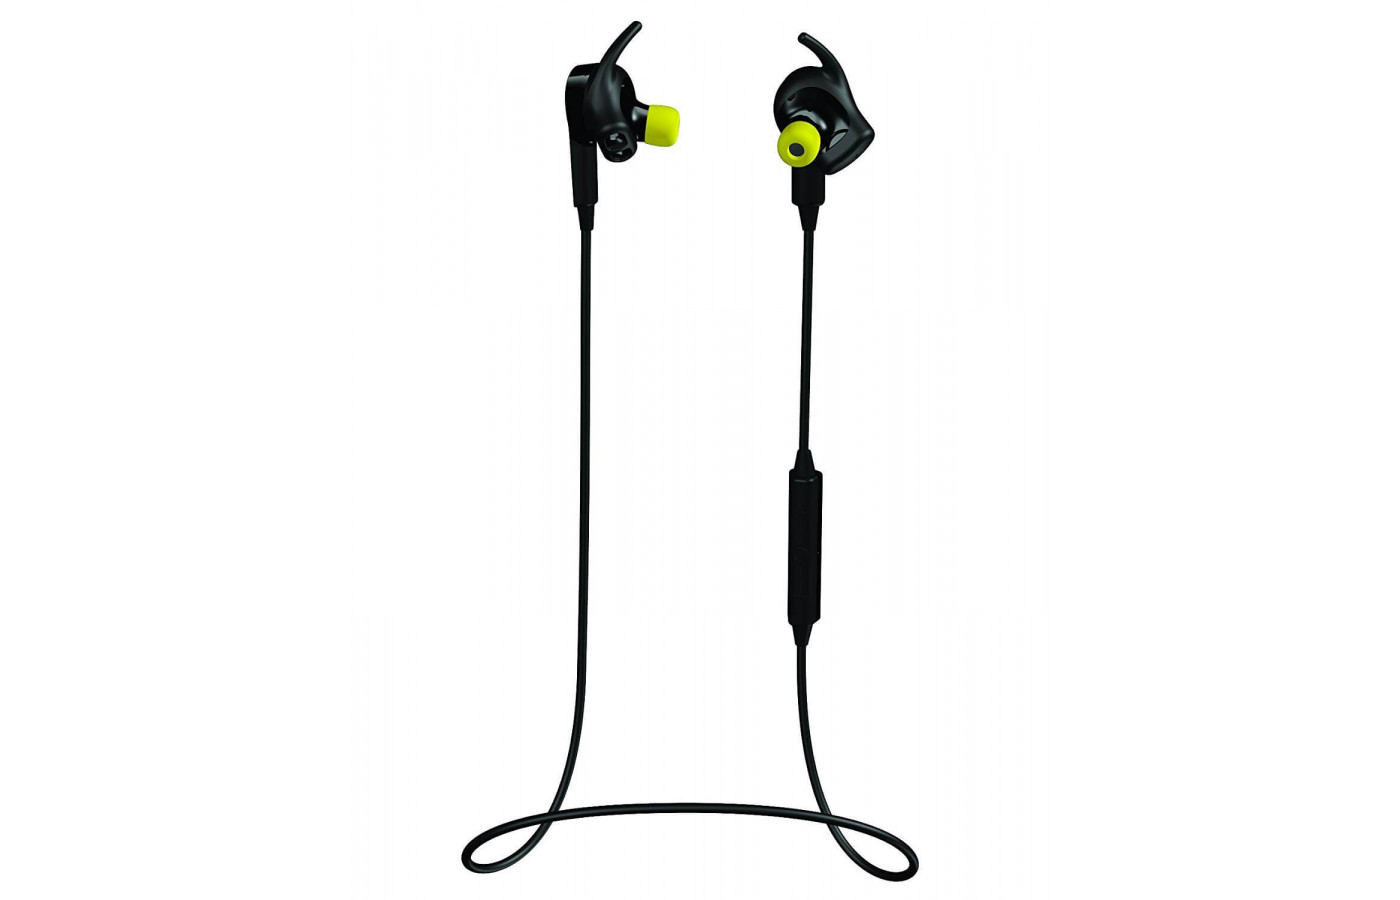 The Sport Pulse is compatible with the Jabra Sport Life app